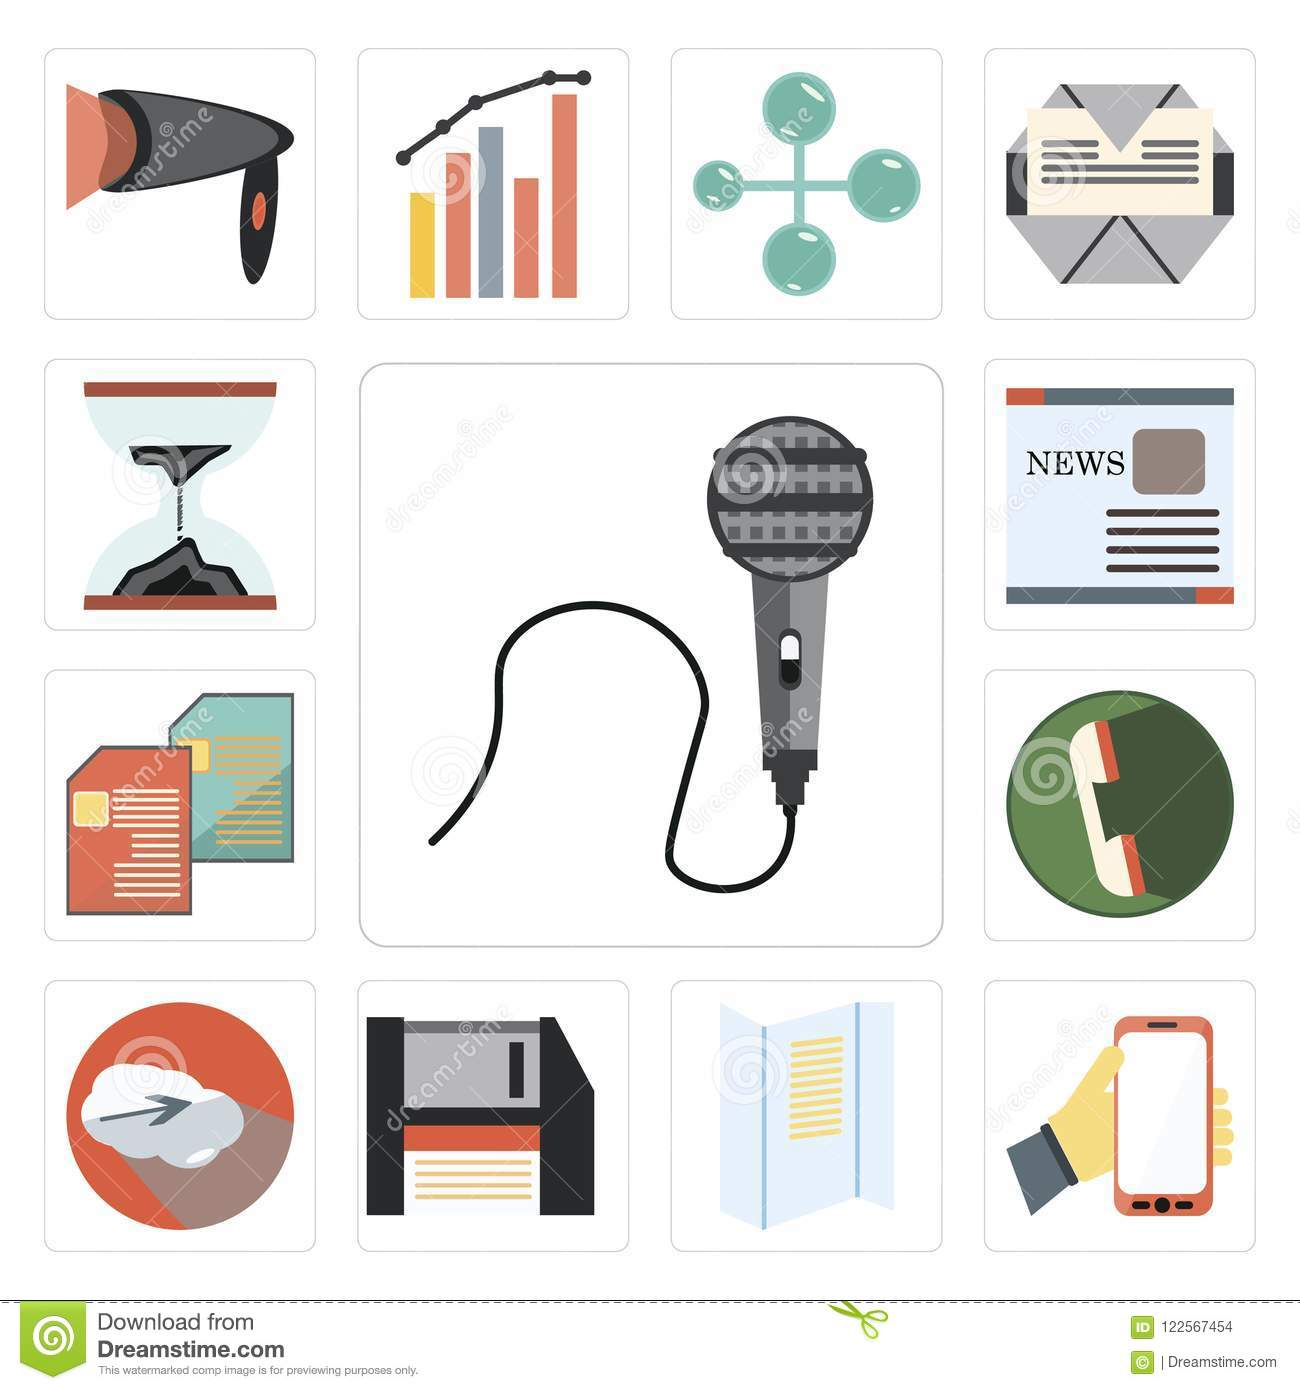 Set Of Voice Recorder, Mobile Phone, Text Lines, Floppy Disk